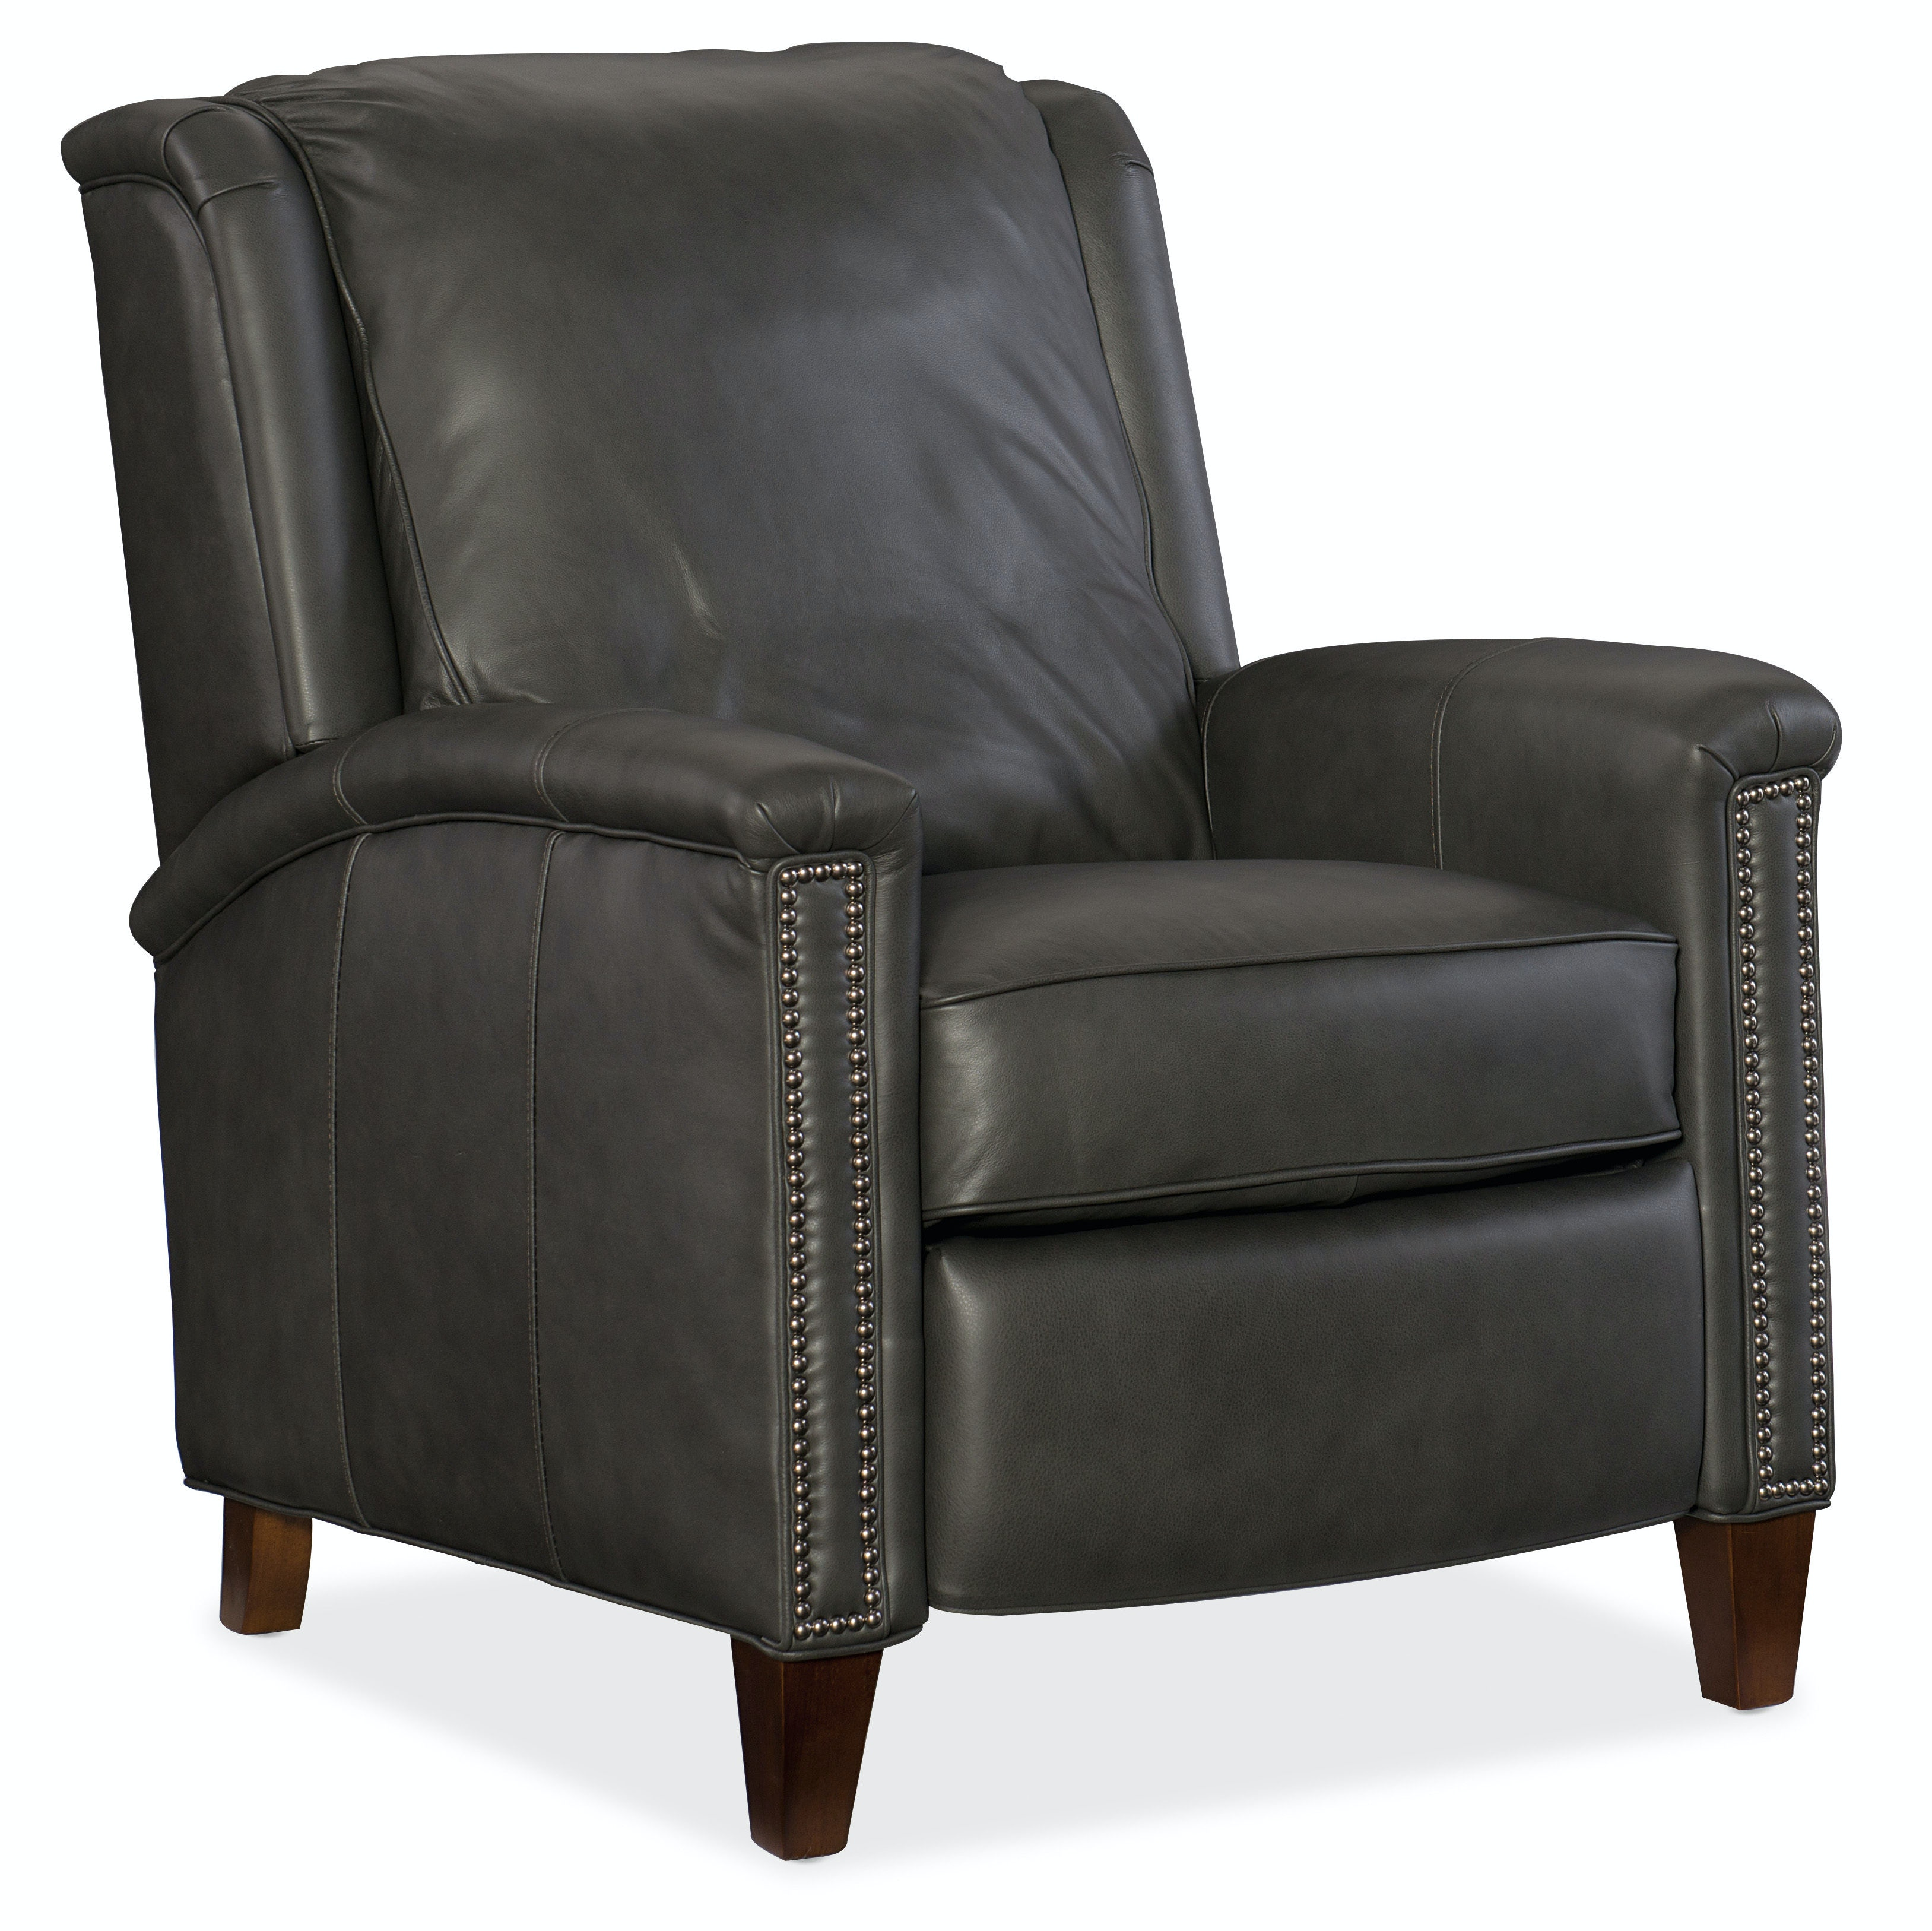 Hooker Furniture Kelly Recliner RC517-096